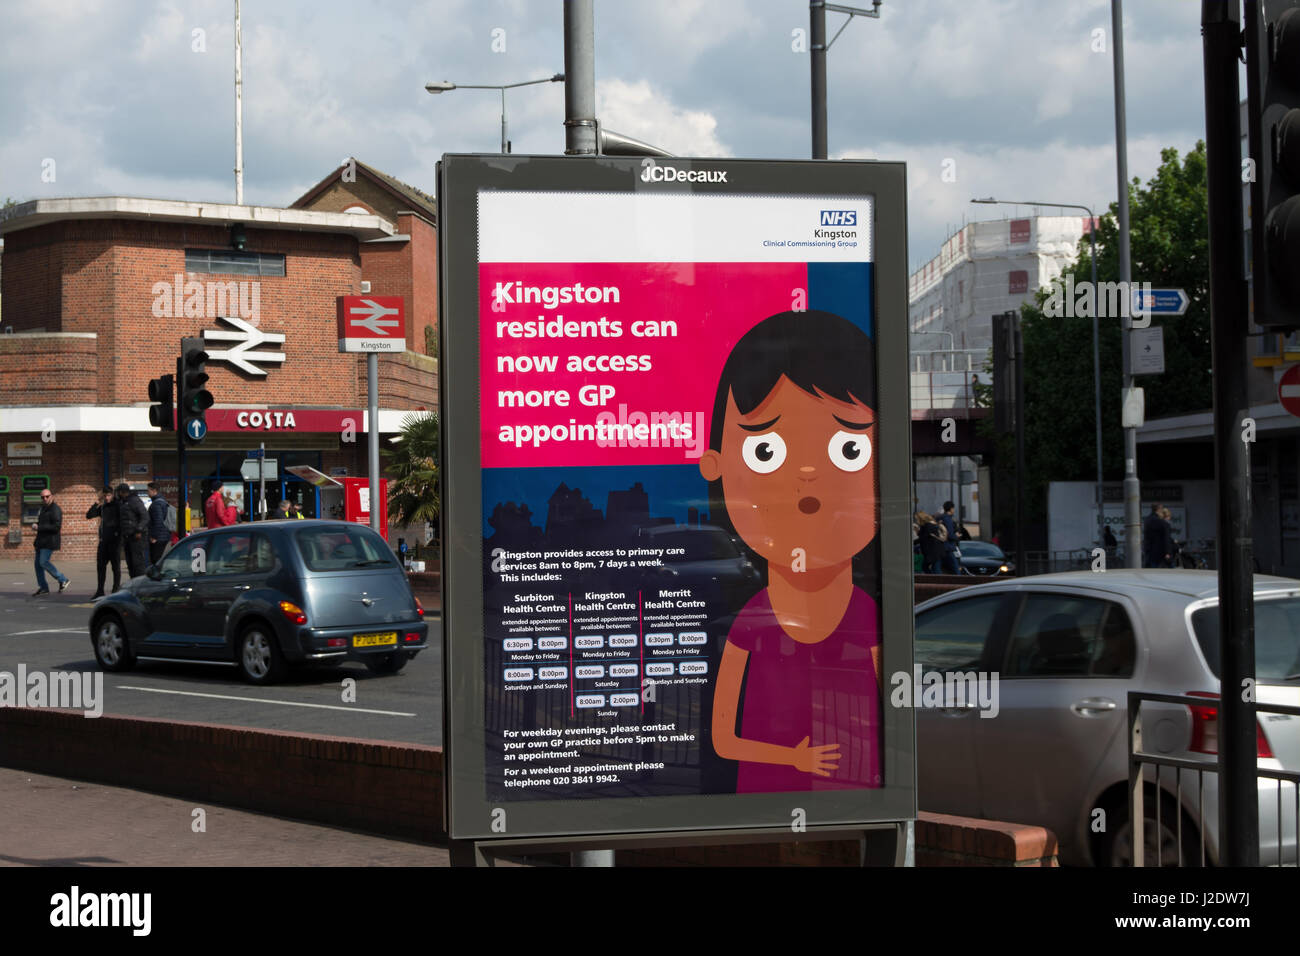 nhs street advertisement suggesting kingston residents can access more gp appointments, in kingston, surrey, england - Stock Image